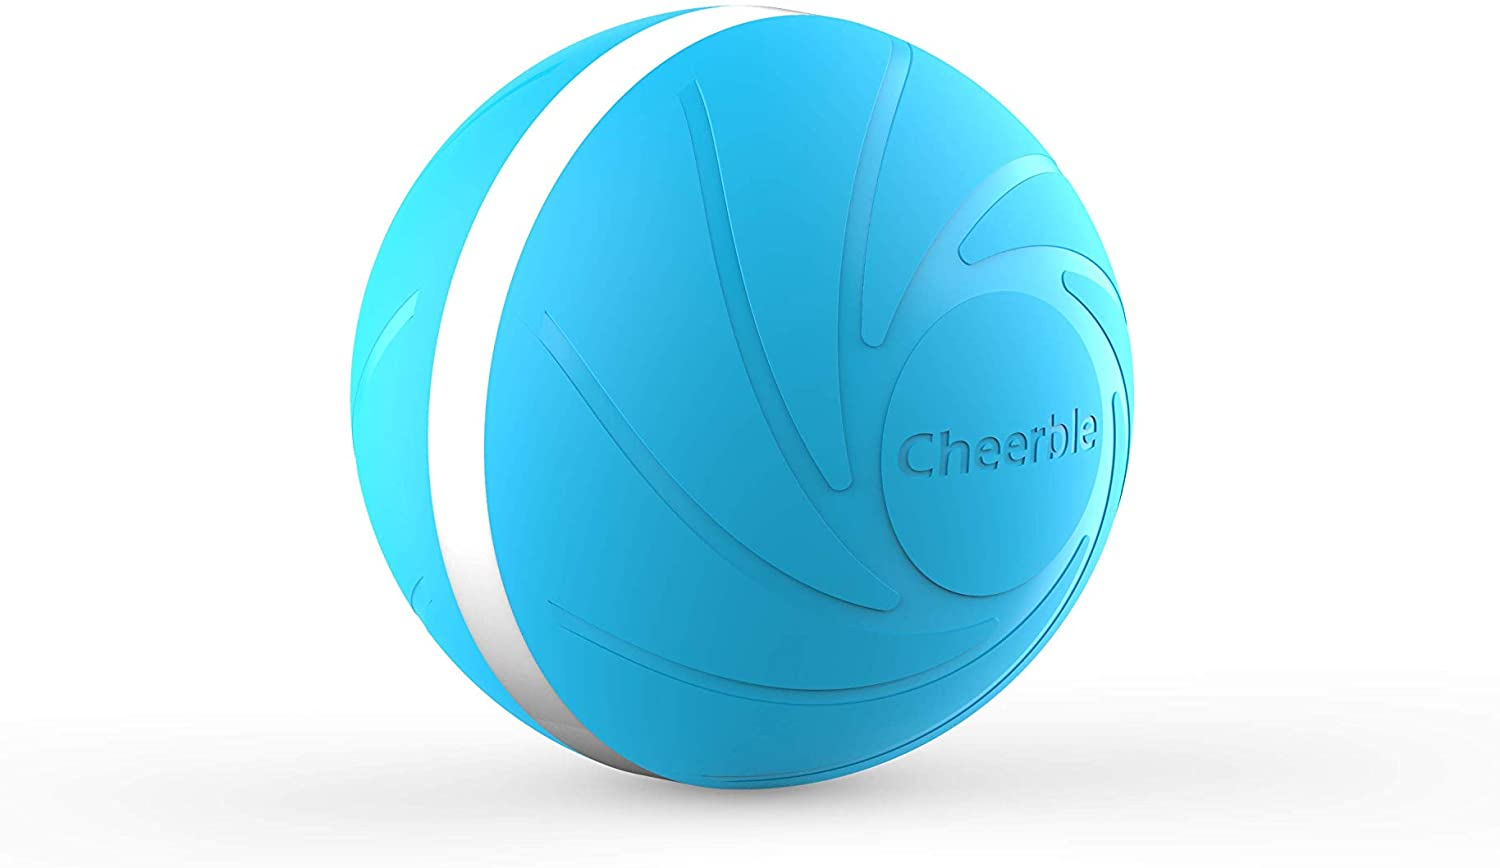 Cheerble Wicked Ball, 100% Automatic and Interactive Ball to Keep Your Dogs/Cats Company All Day, Your Pet's Joy When Home Alone -NOT for CHEWERS